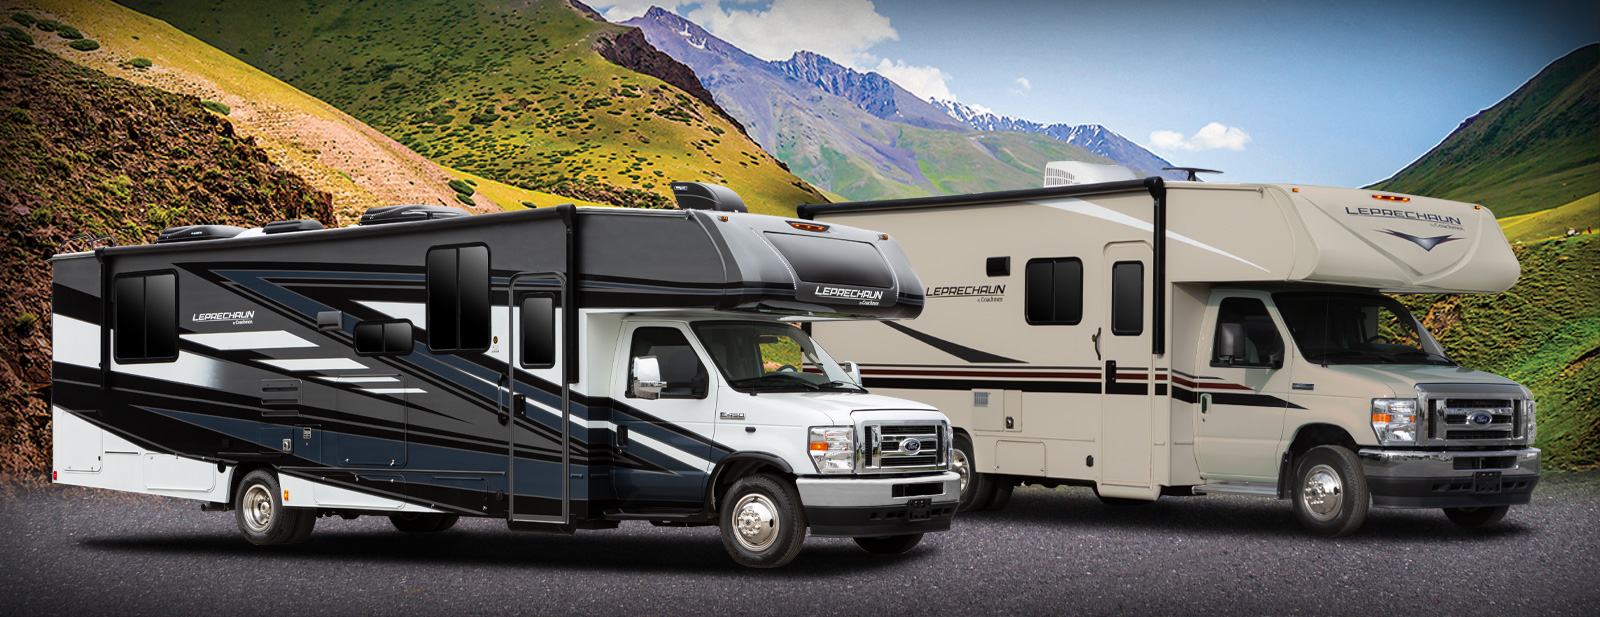 Leprechaun | Coachmen RV - Manufacturer of Travel Trailers - Fifth on